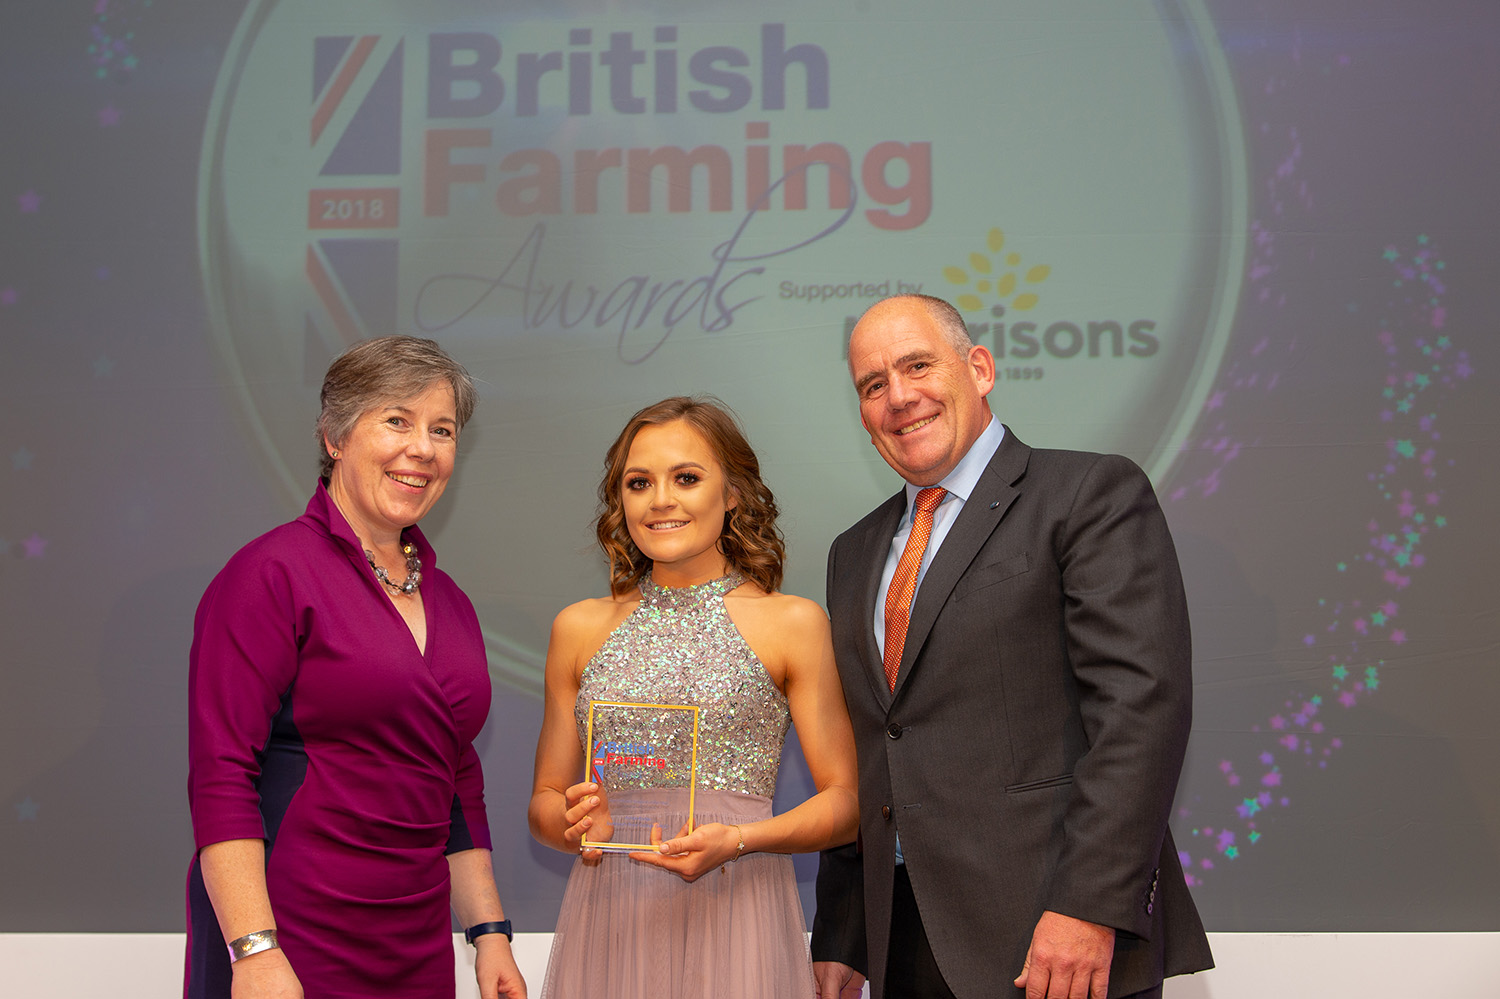 Agricultural Student of the Year, sponsored by Kubota